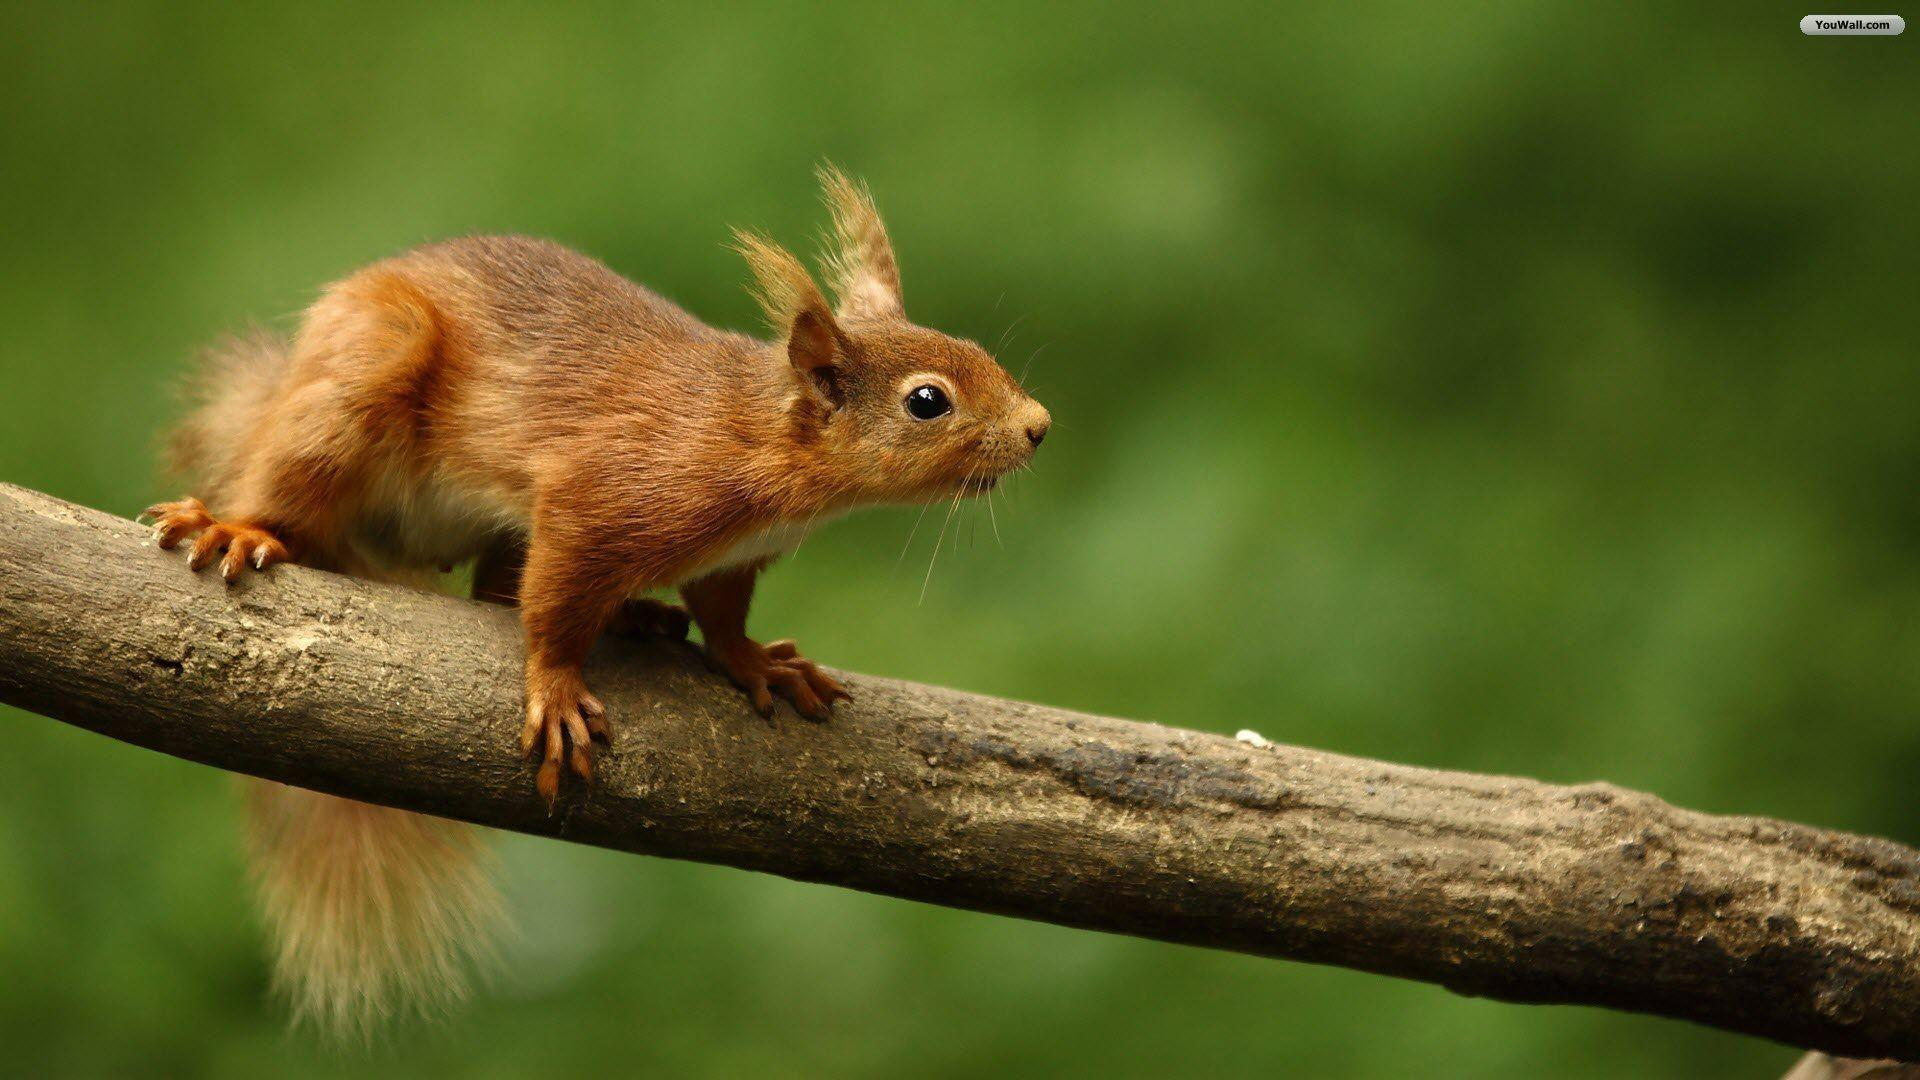 Animals For > Cute Squirrel Wallpapers Hd